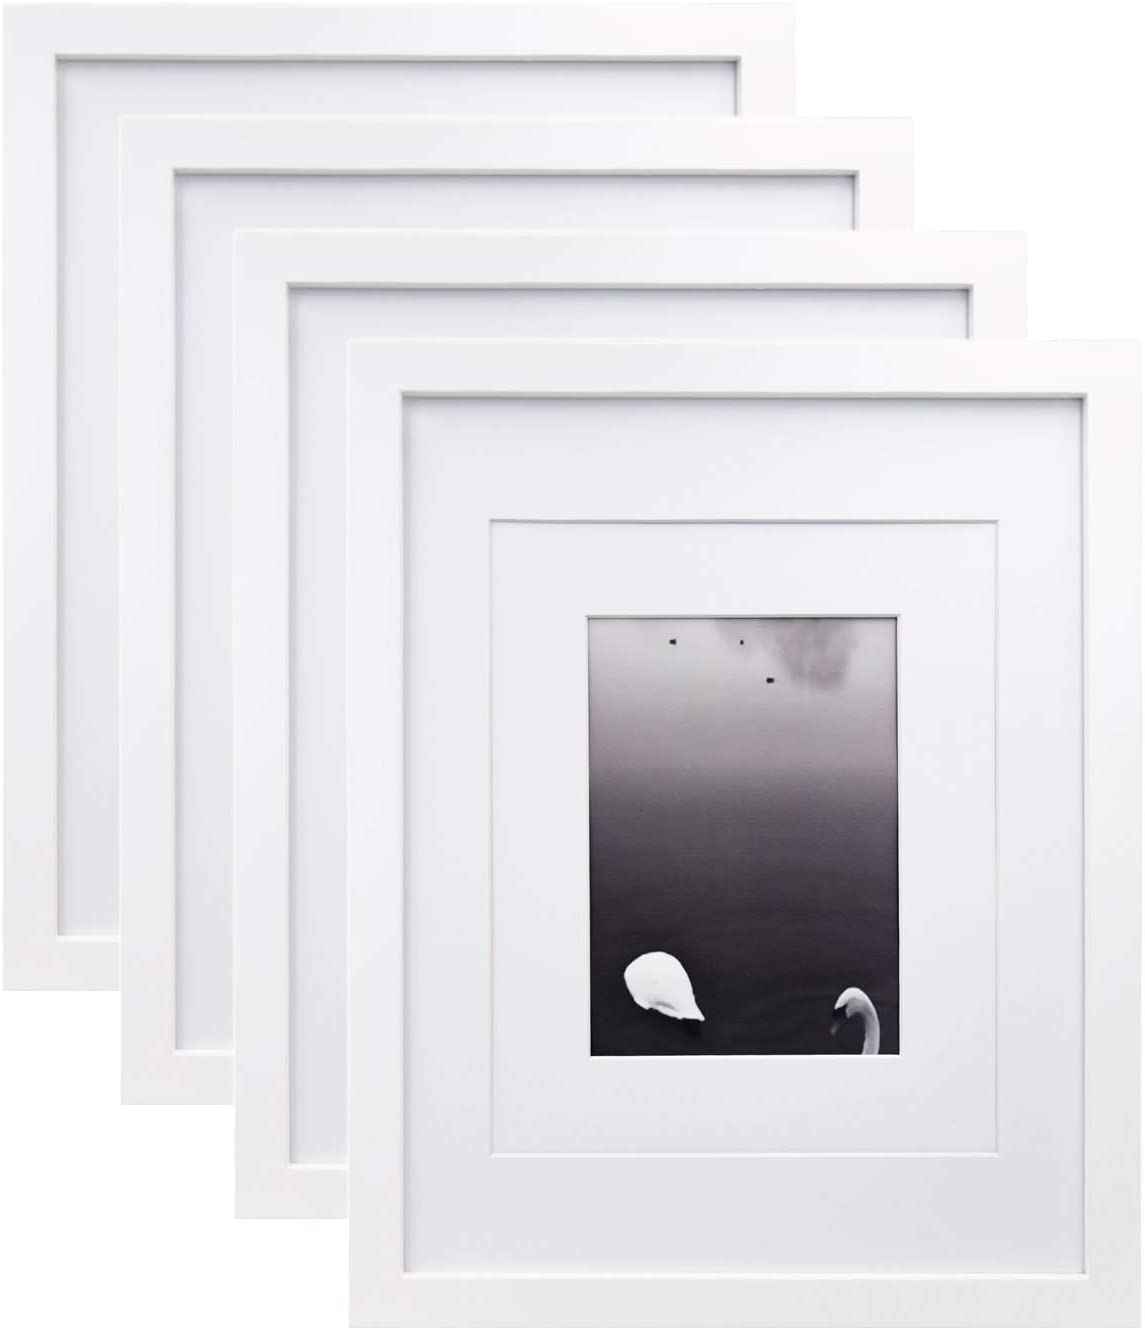 Engagement Picture Frame Classic White and Silver Wedding Picture Frame 11x14 Portrait Photo Frame